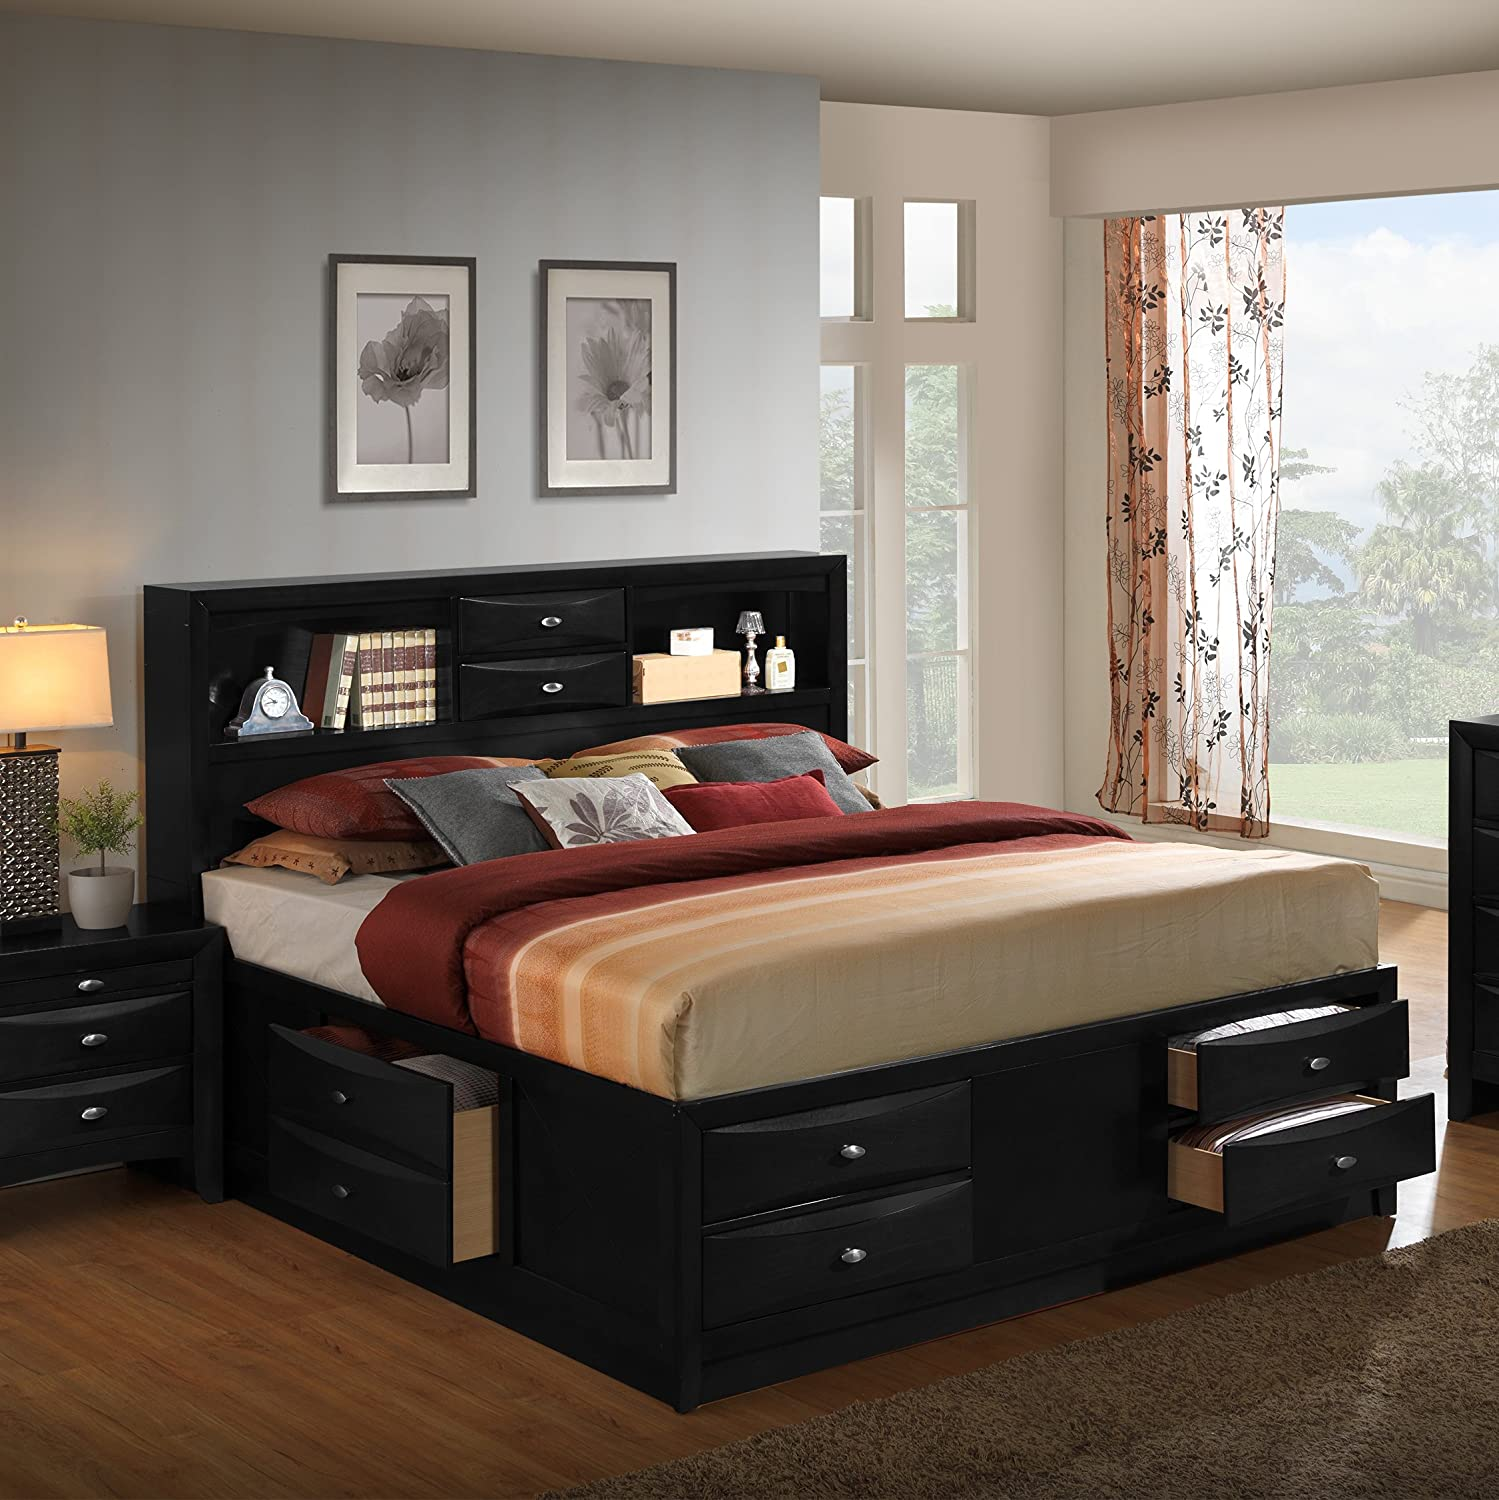 board floor bed platform headboards pattern twin zebra furniture upholstered wood drawers on double beds metal size williamsburg wooden design and drawer astounding headboard epicenters frame storage underneath queen mattress white shelves of frames carpet with for head sale full